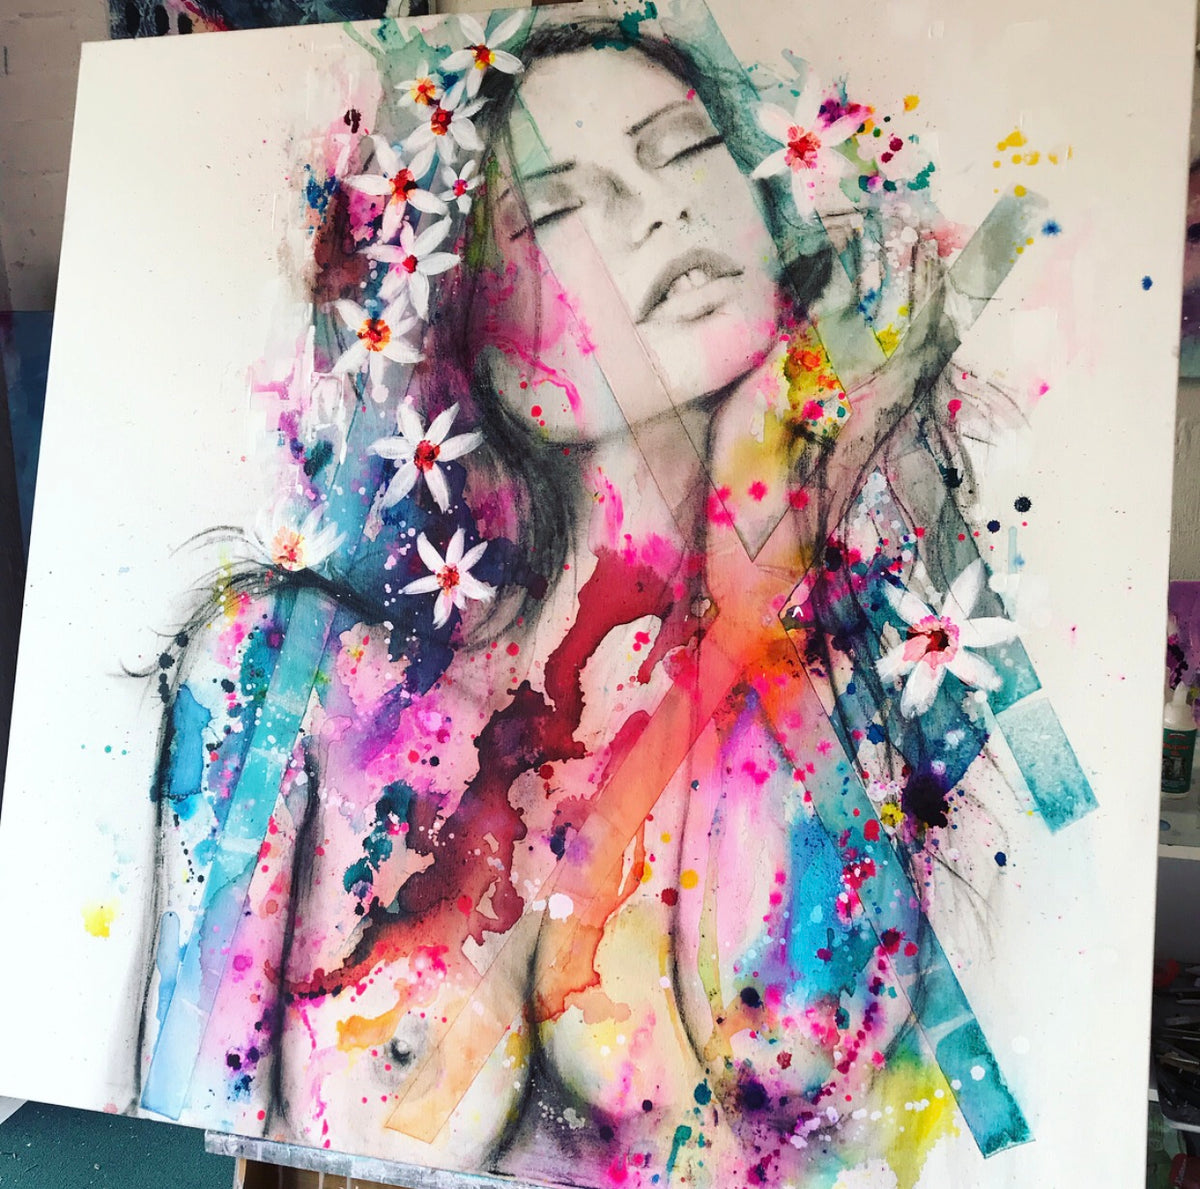 Melania 2. Original Artwork on canvas